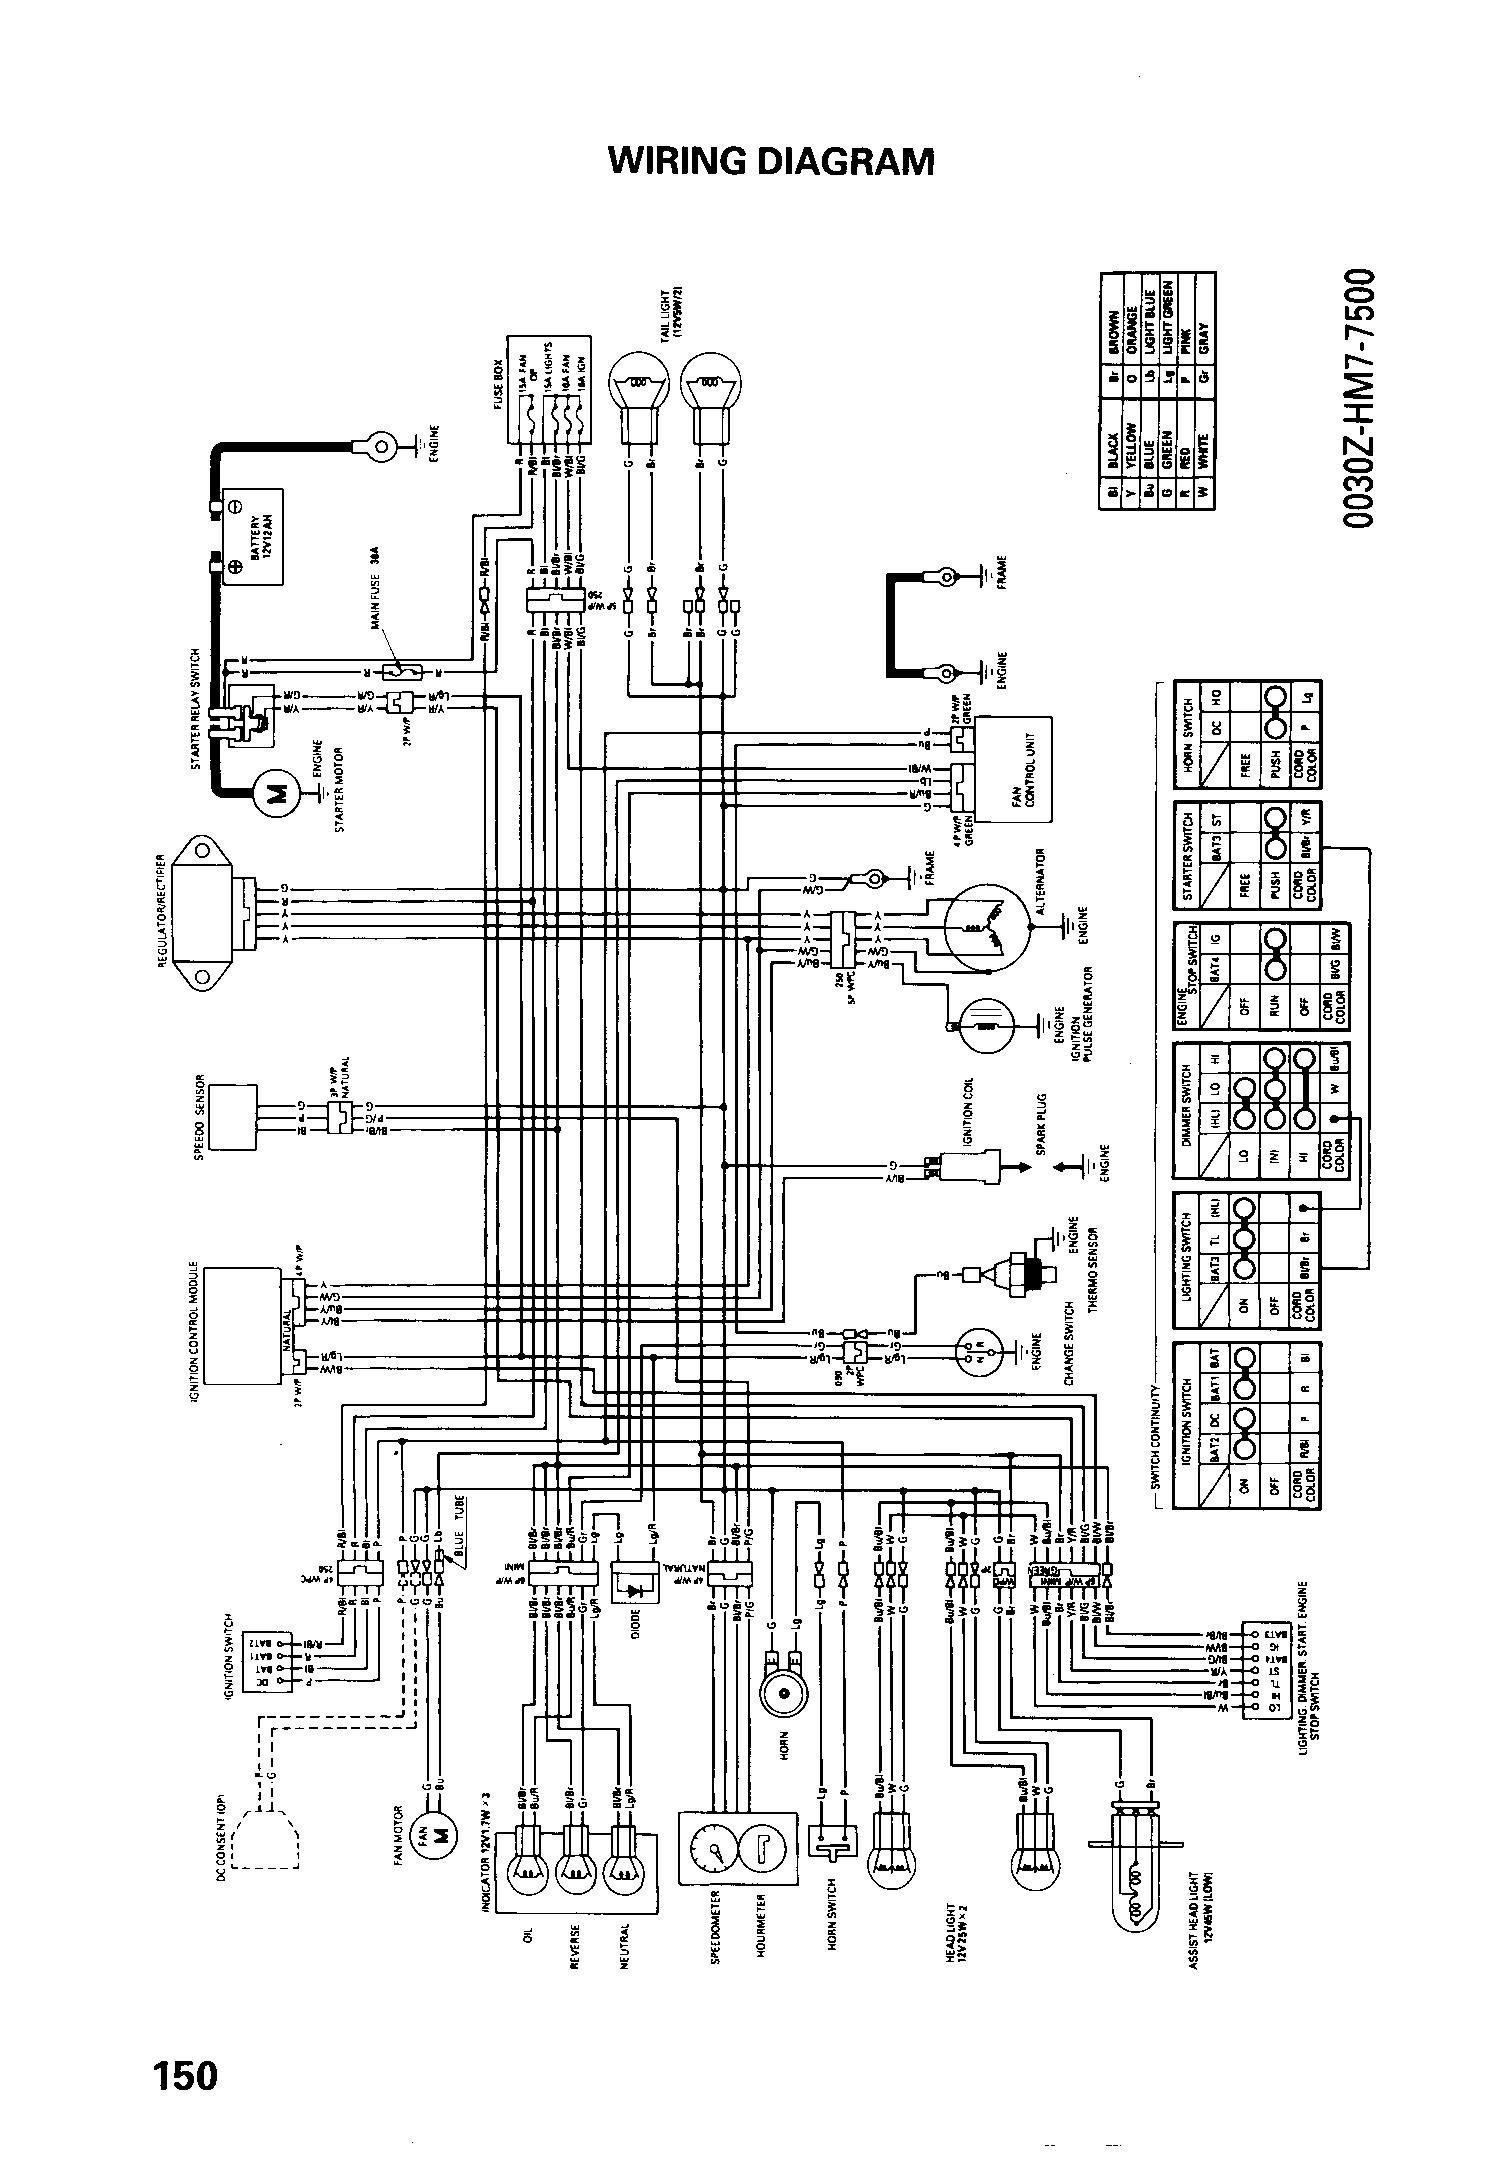 Wire Schematic 2004 Honda Rancher - Wiring Diagrams Word on